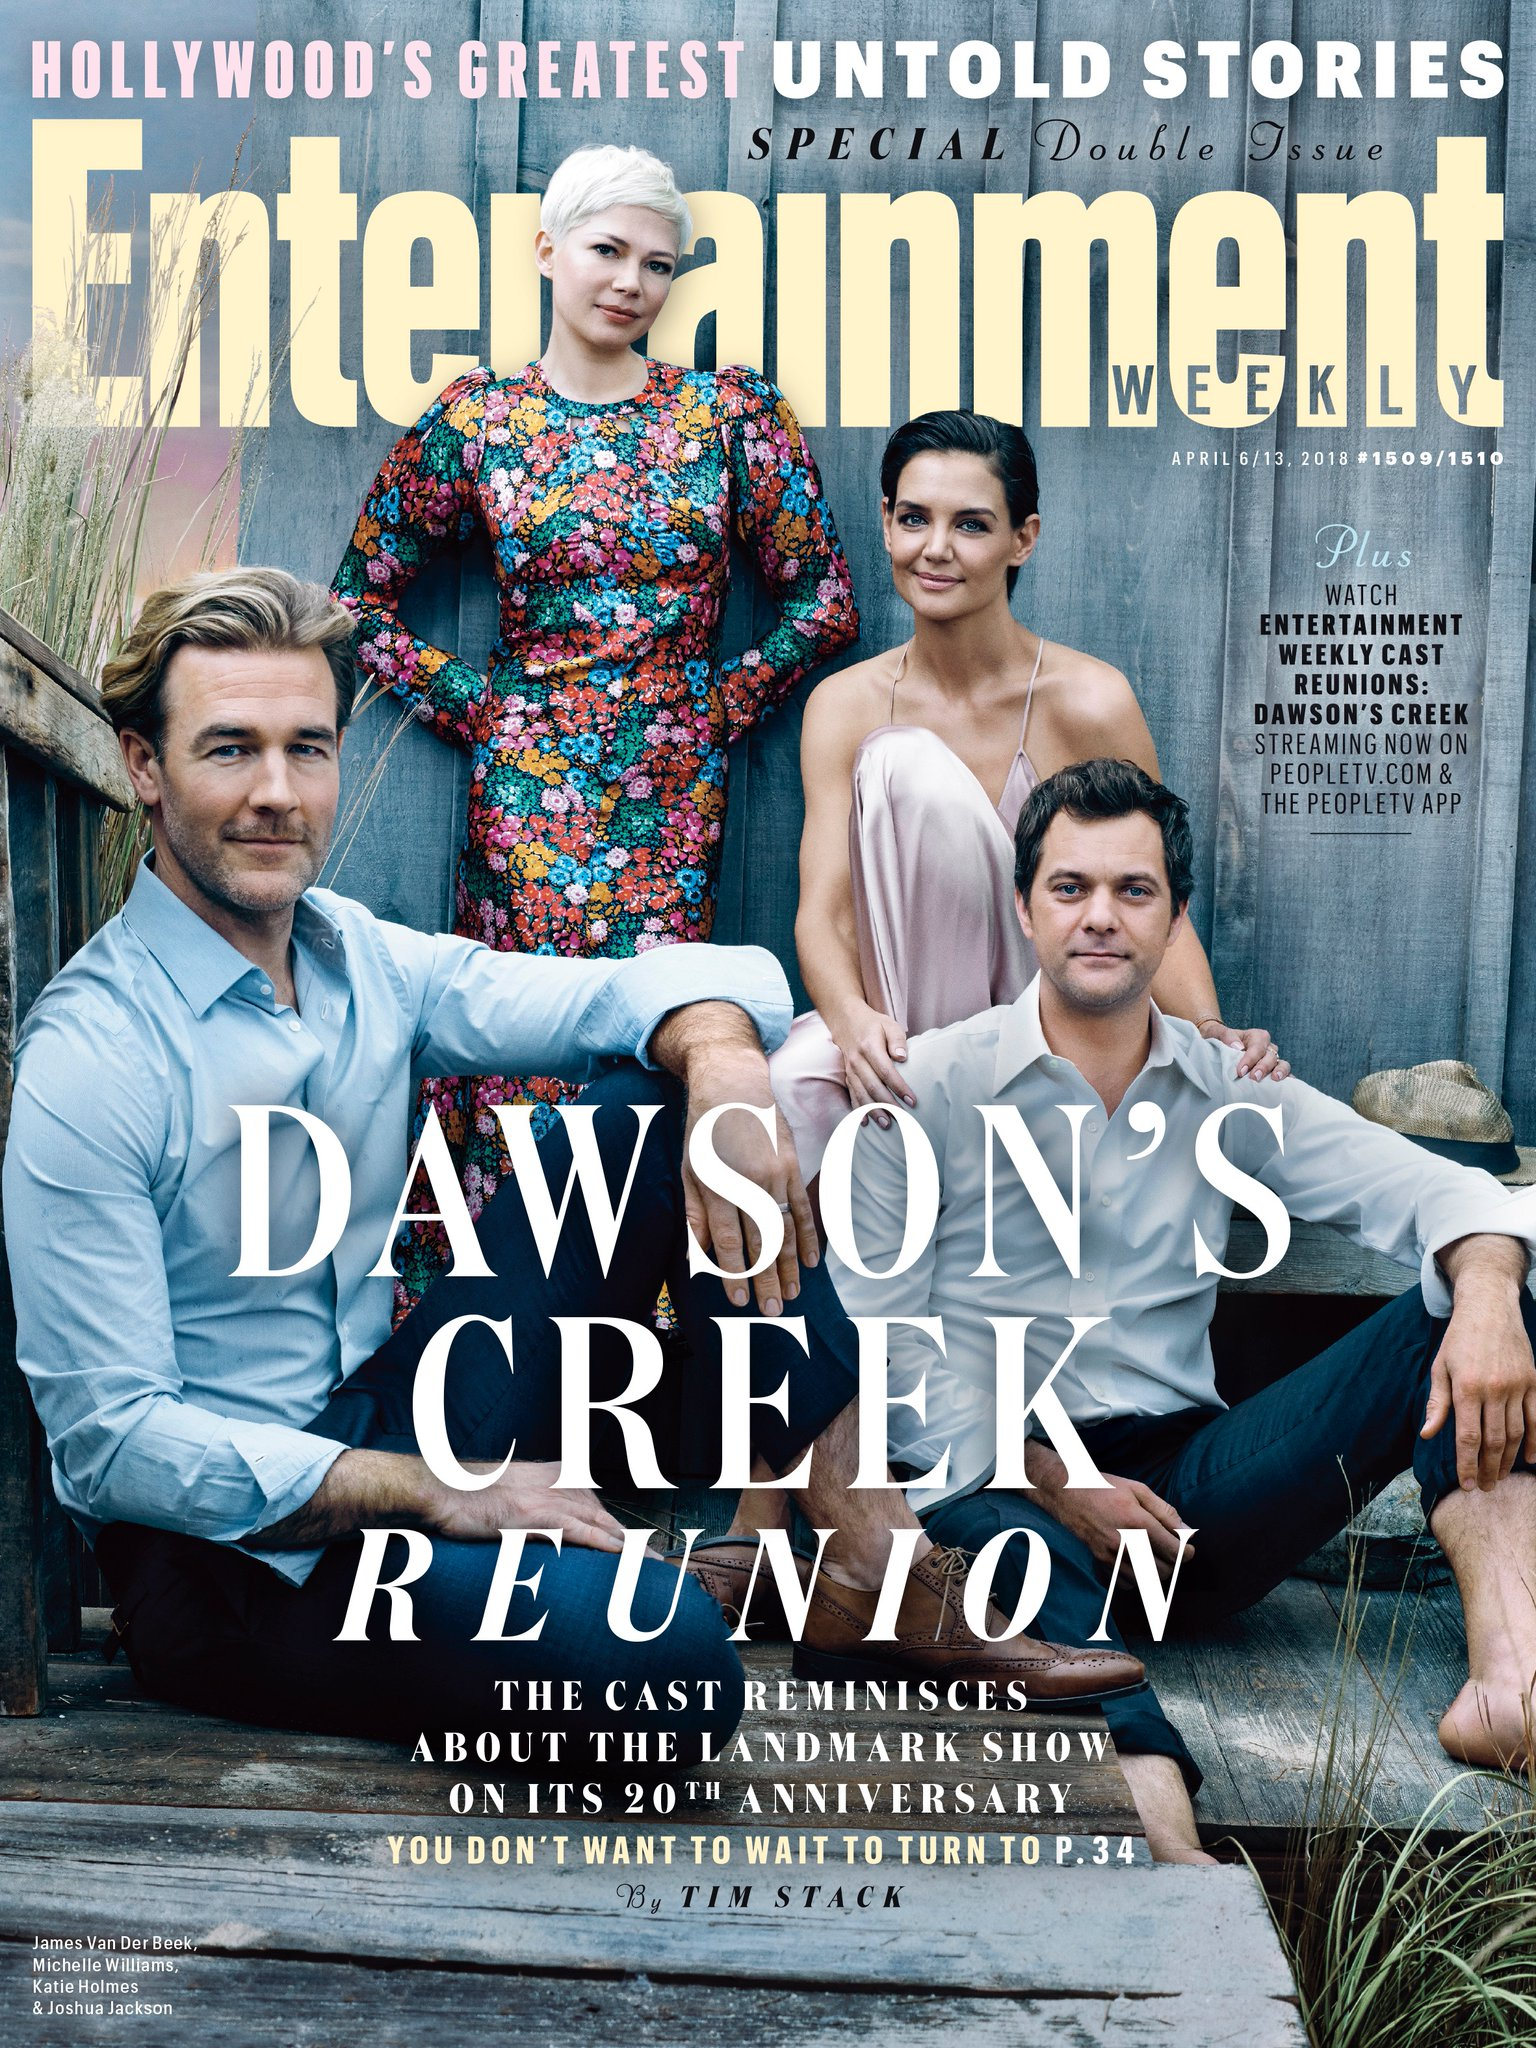 for-the-first-time-in-15-years-the-cast-of-dawsons-creek-reunite-for-the-20th-anniversary1